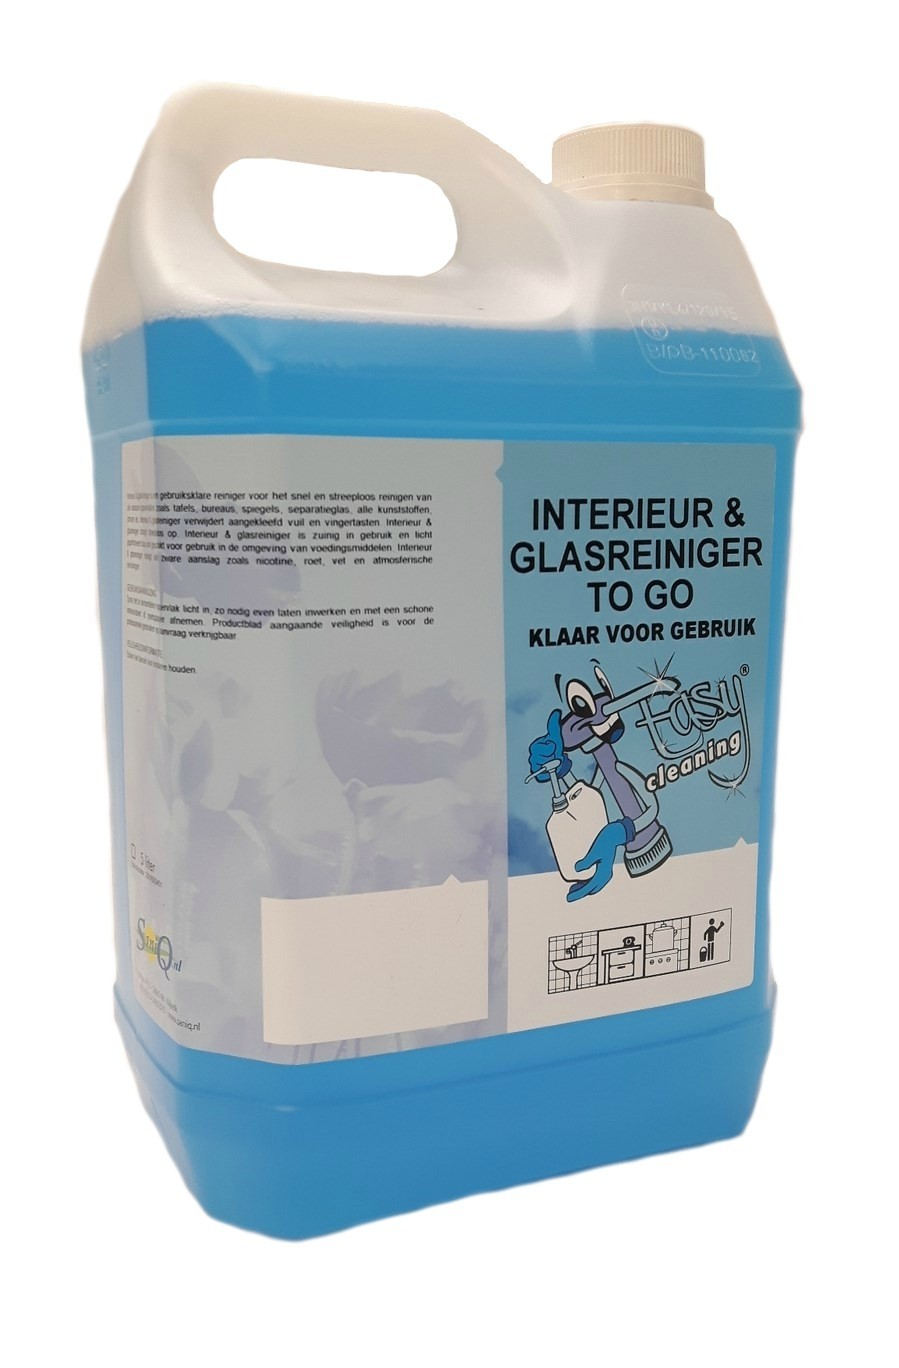 Easy Cleaning Nr. 1 Interieur TO GO, 5 liter